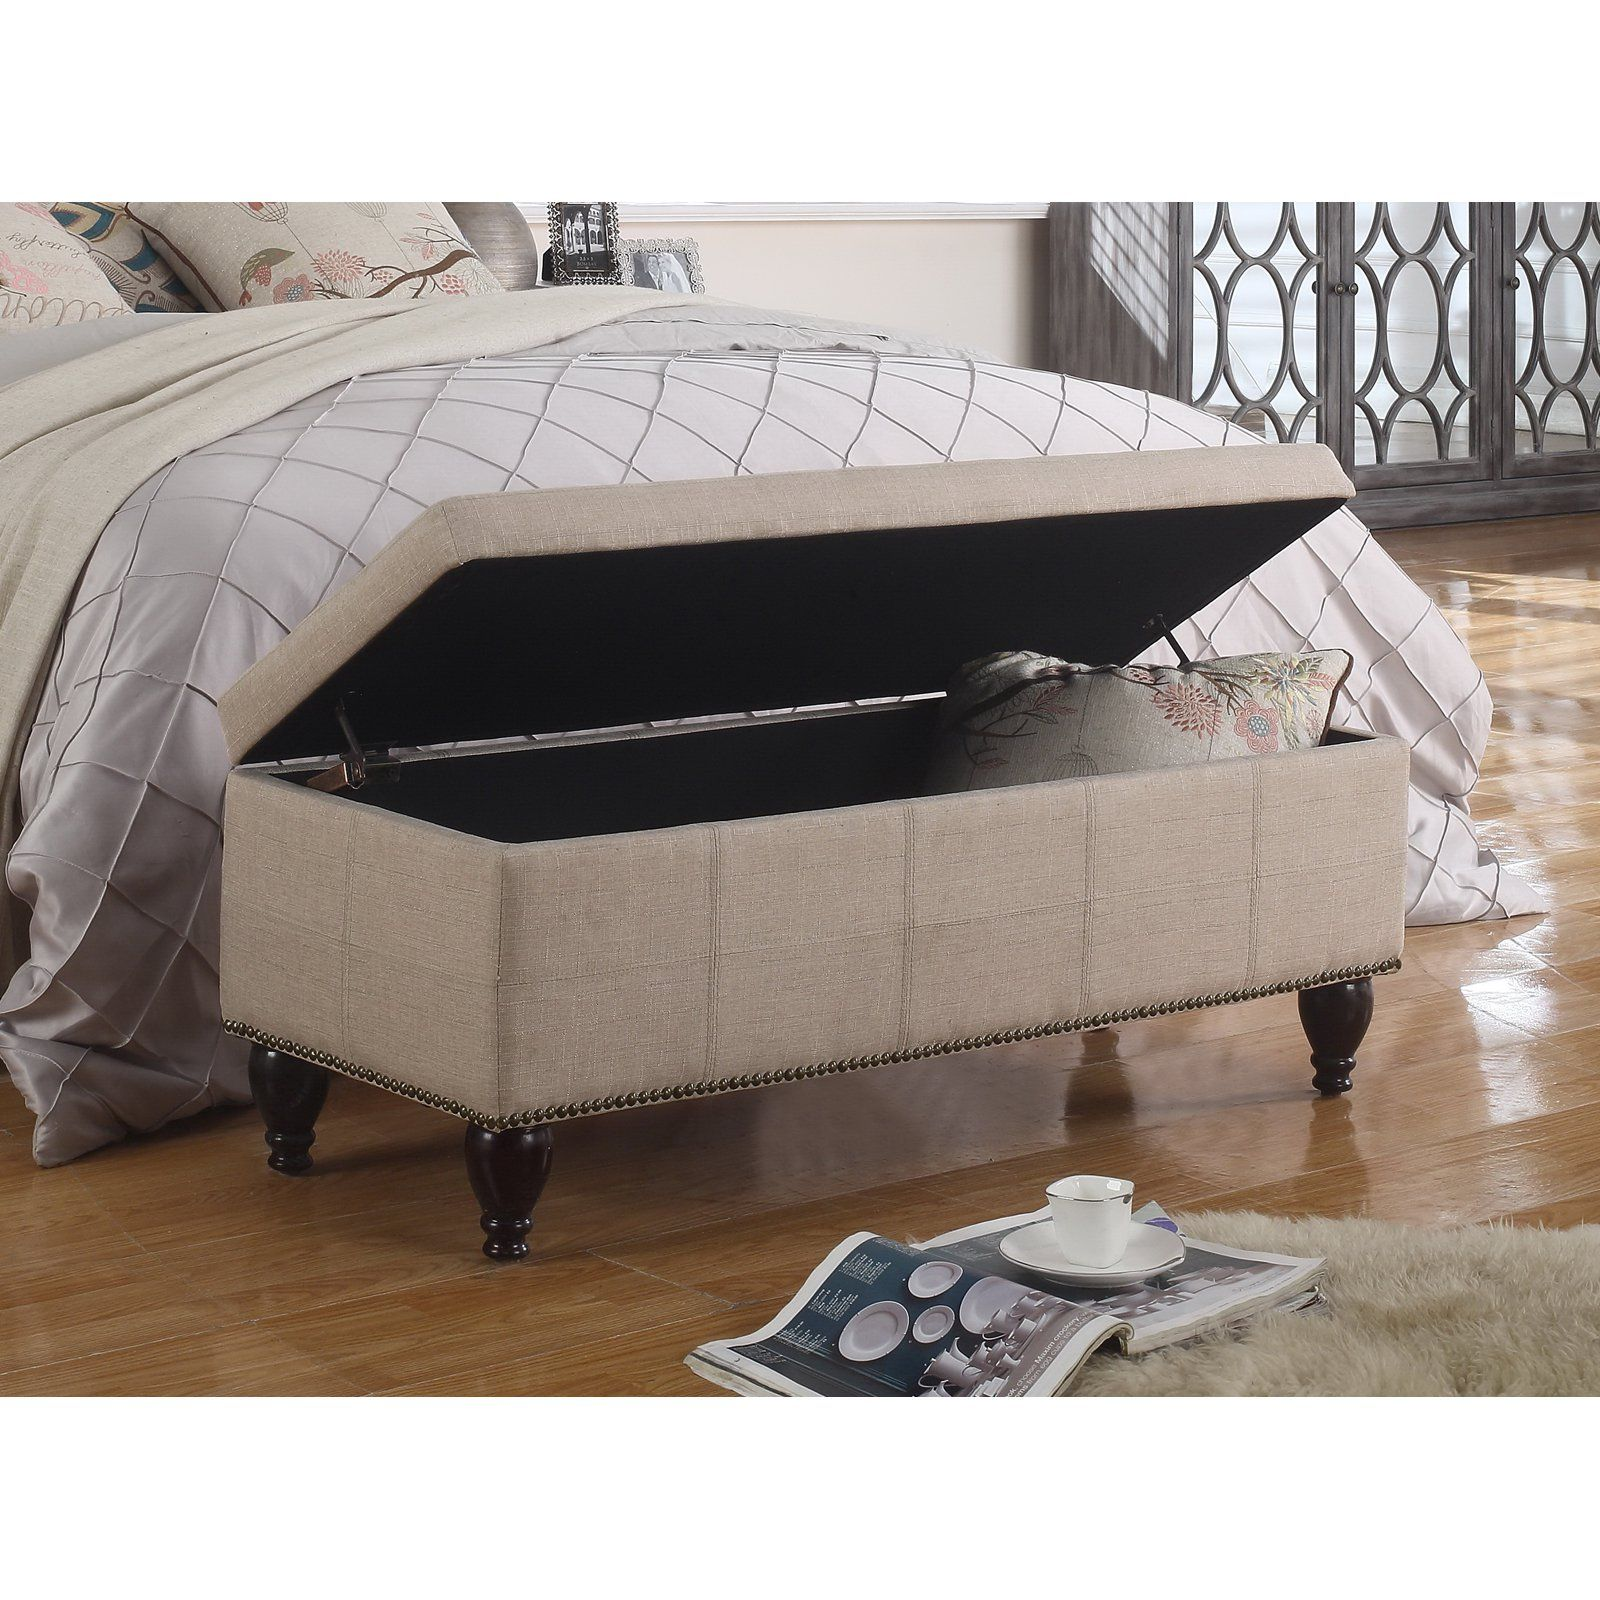 Terrific Rosevera Elmo Upholstered Ottoman Storage Bedroom Bench Ocoug Best Dining Table And Chair Ideas Images Ocougorg